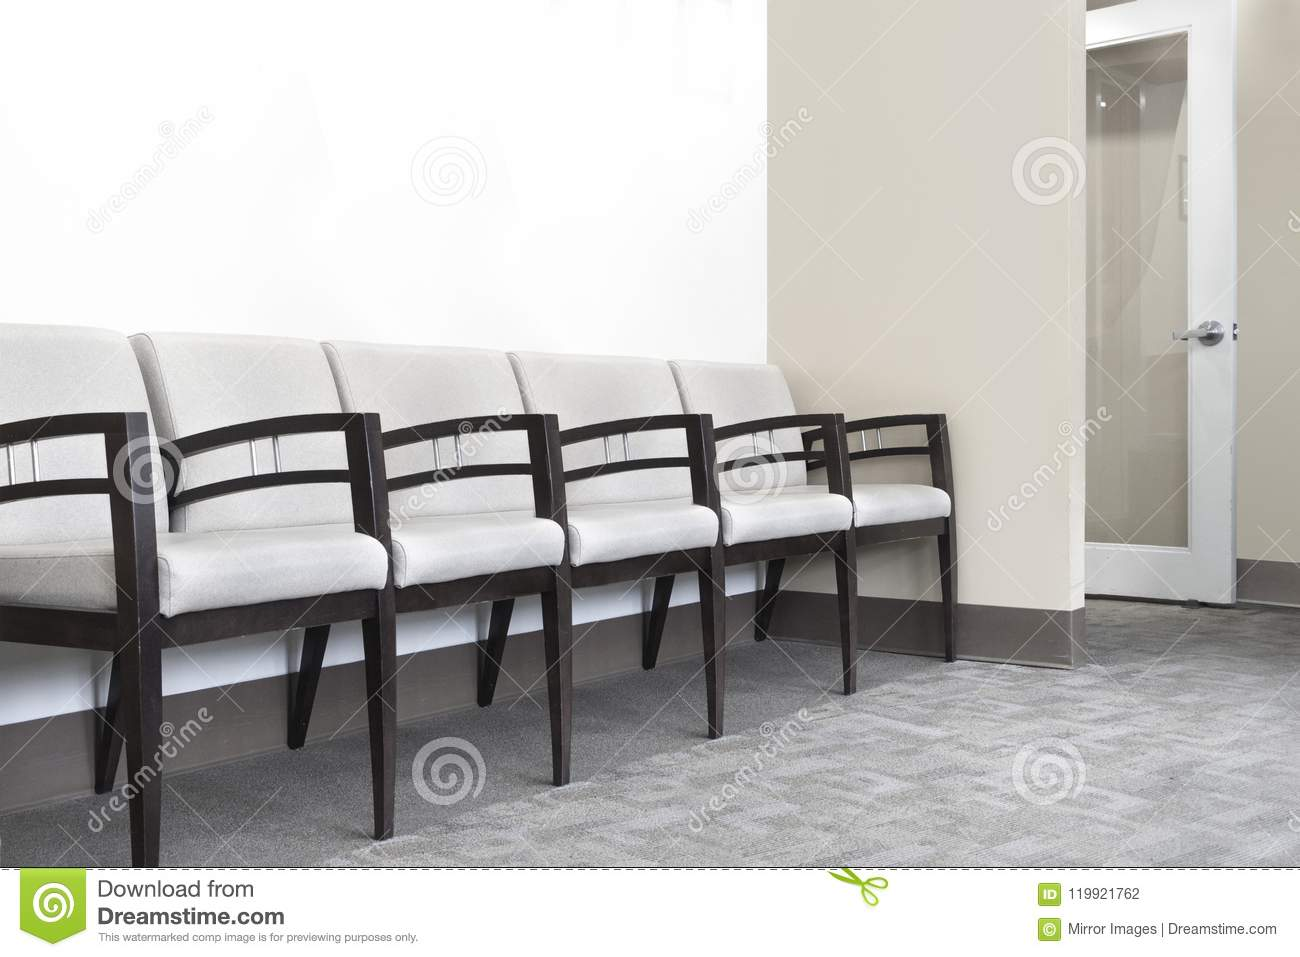 Strange Waiting Room Chairs Physicians Office Hospital Room Stock Interior Design Ideas Tzicisoteloinfo